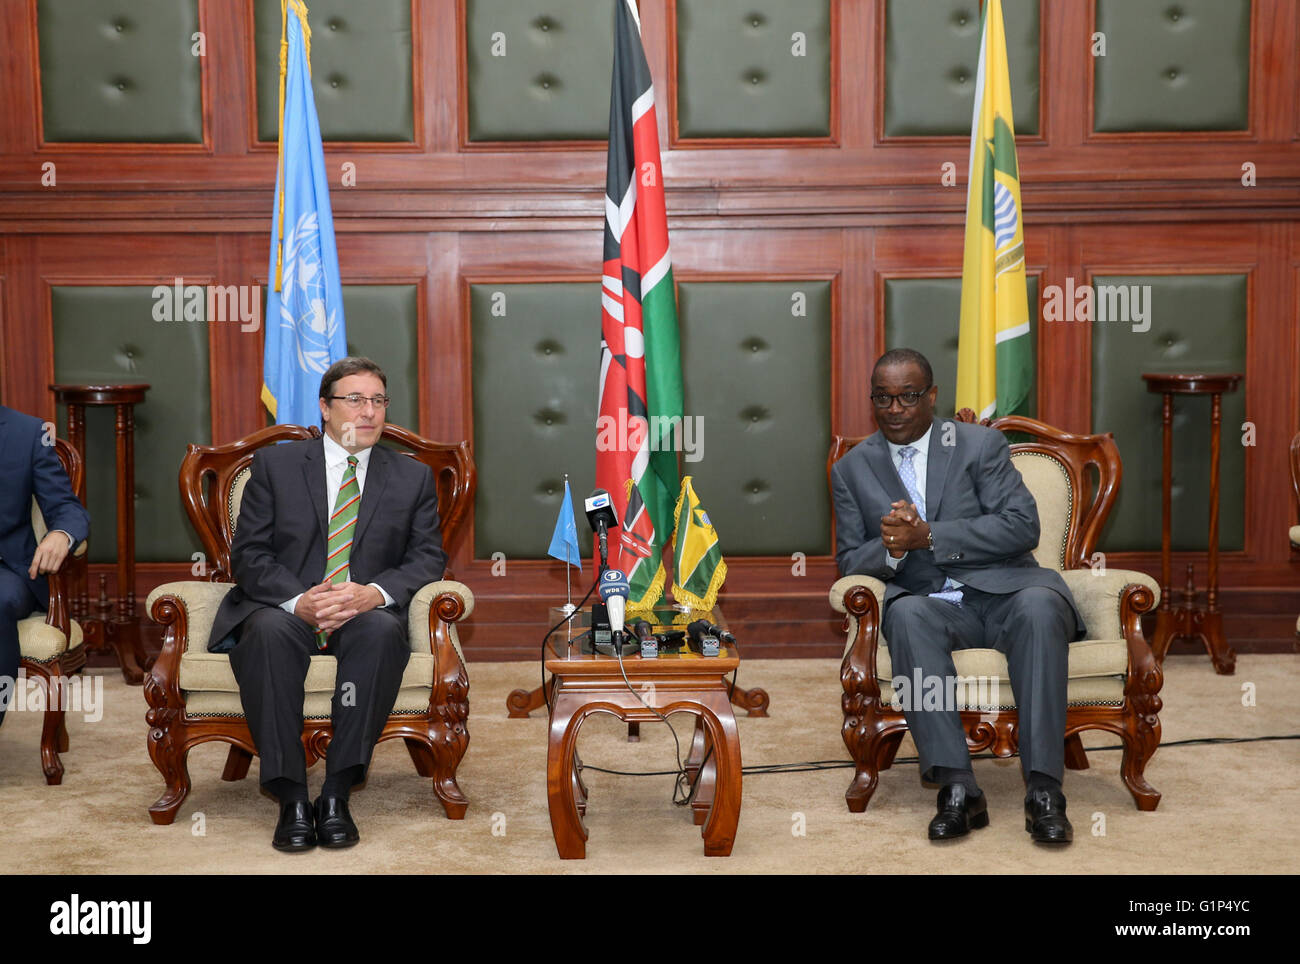 Nairobi. 18th May, 2016. Achim Steiner (L), Executive Director of the United Nations Environmental Program (UNEP), - Stock Image